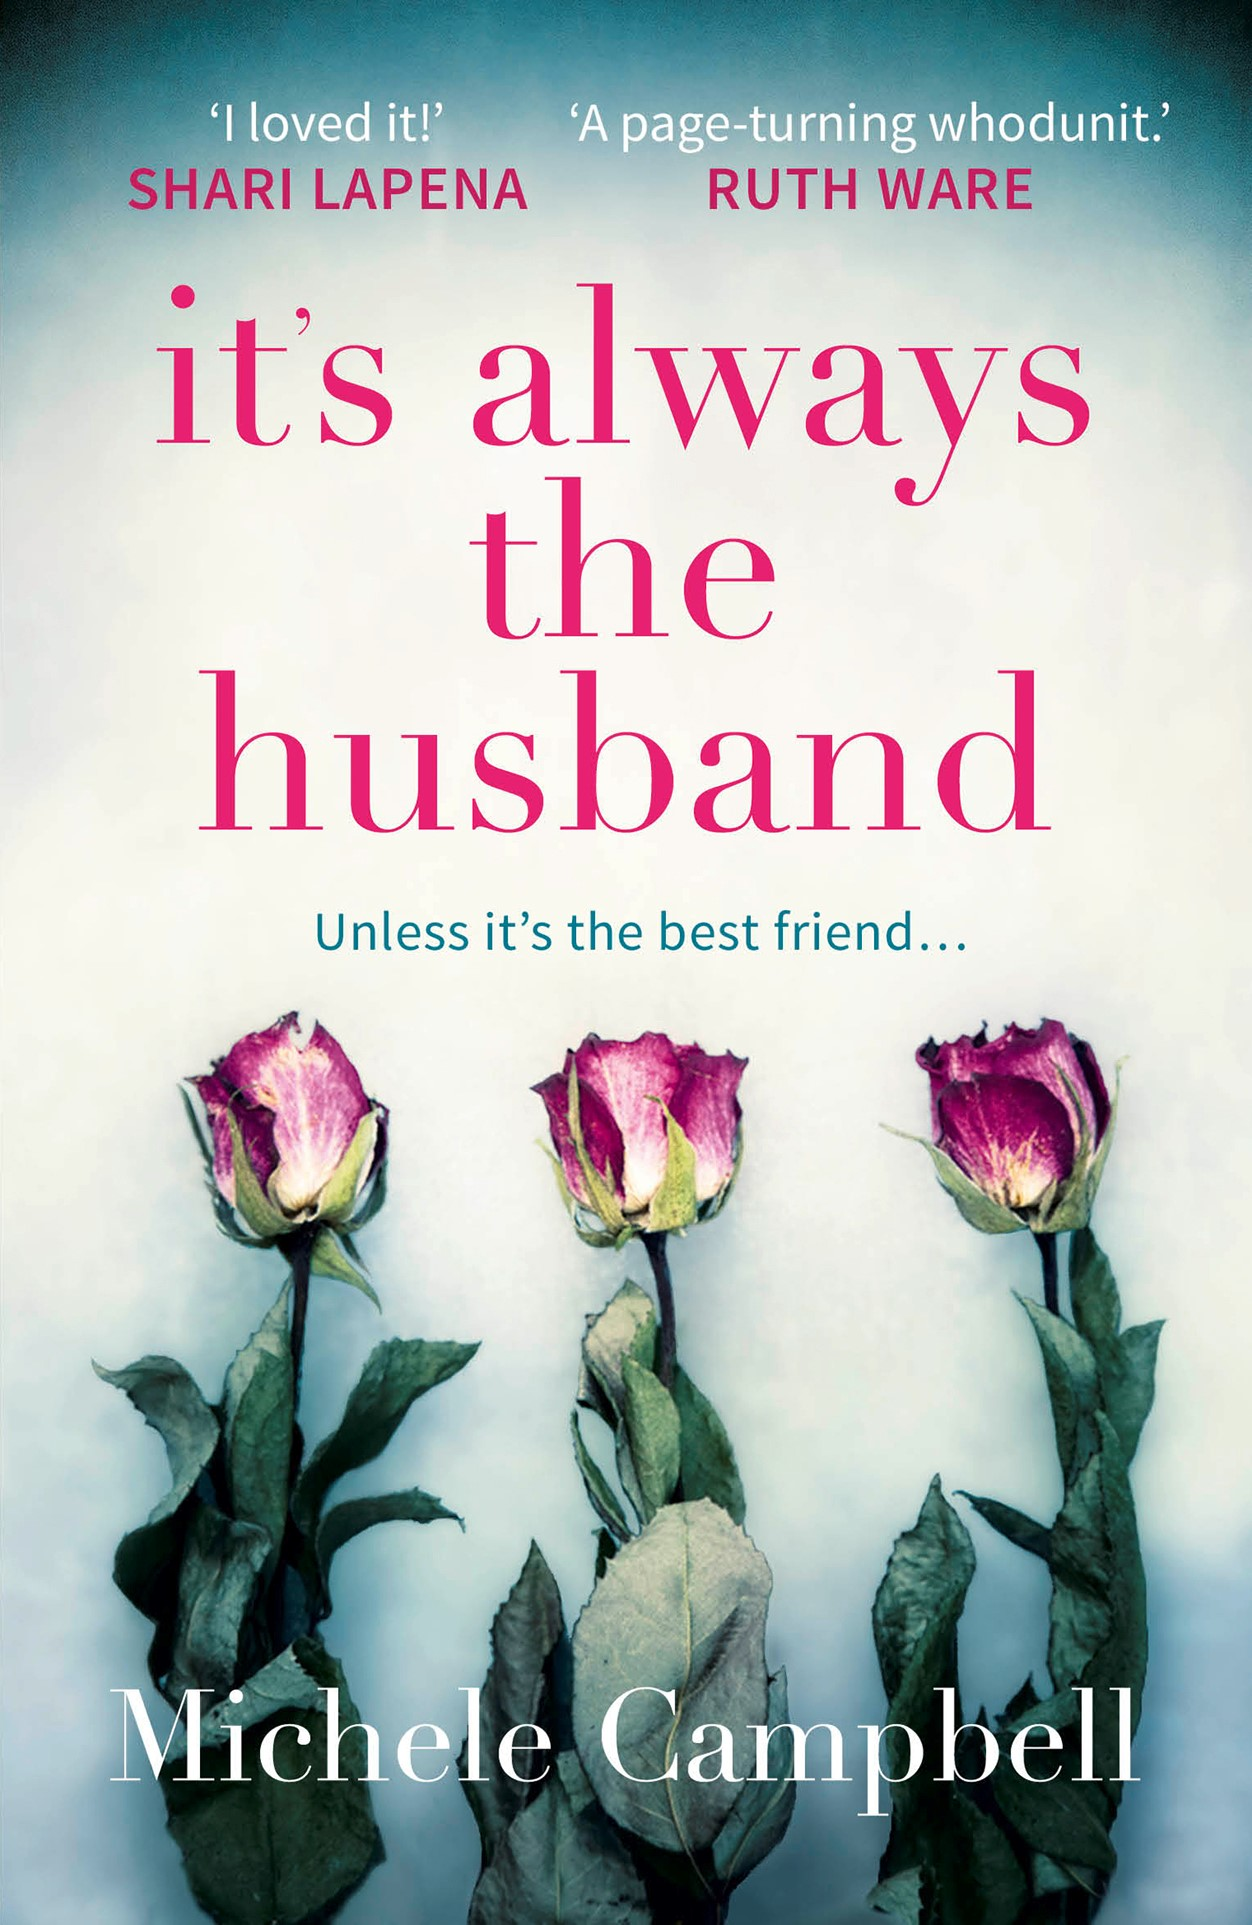 It's Always the Husband, UK Edition hi-res version